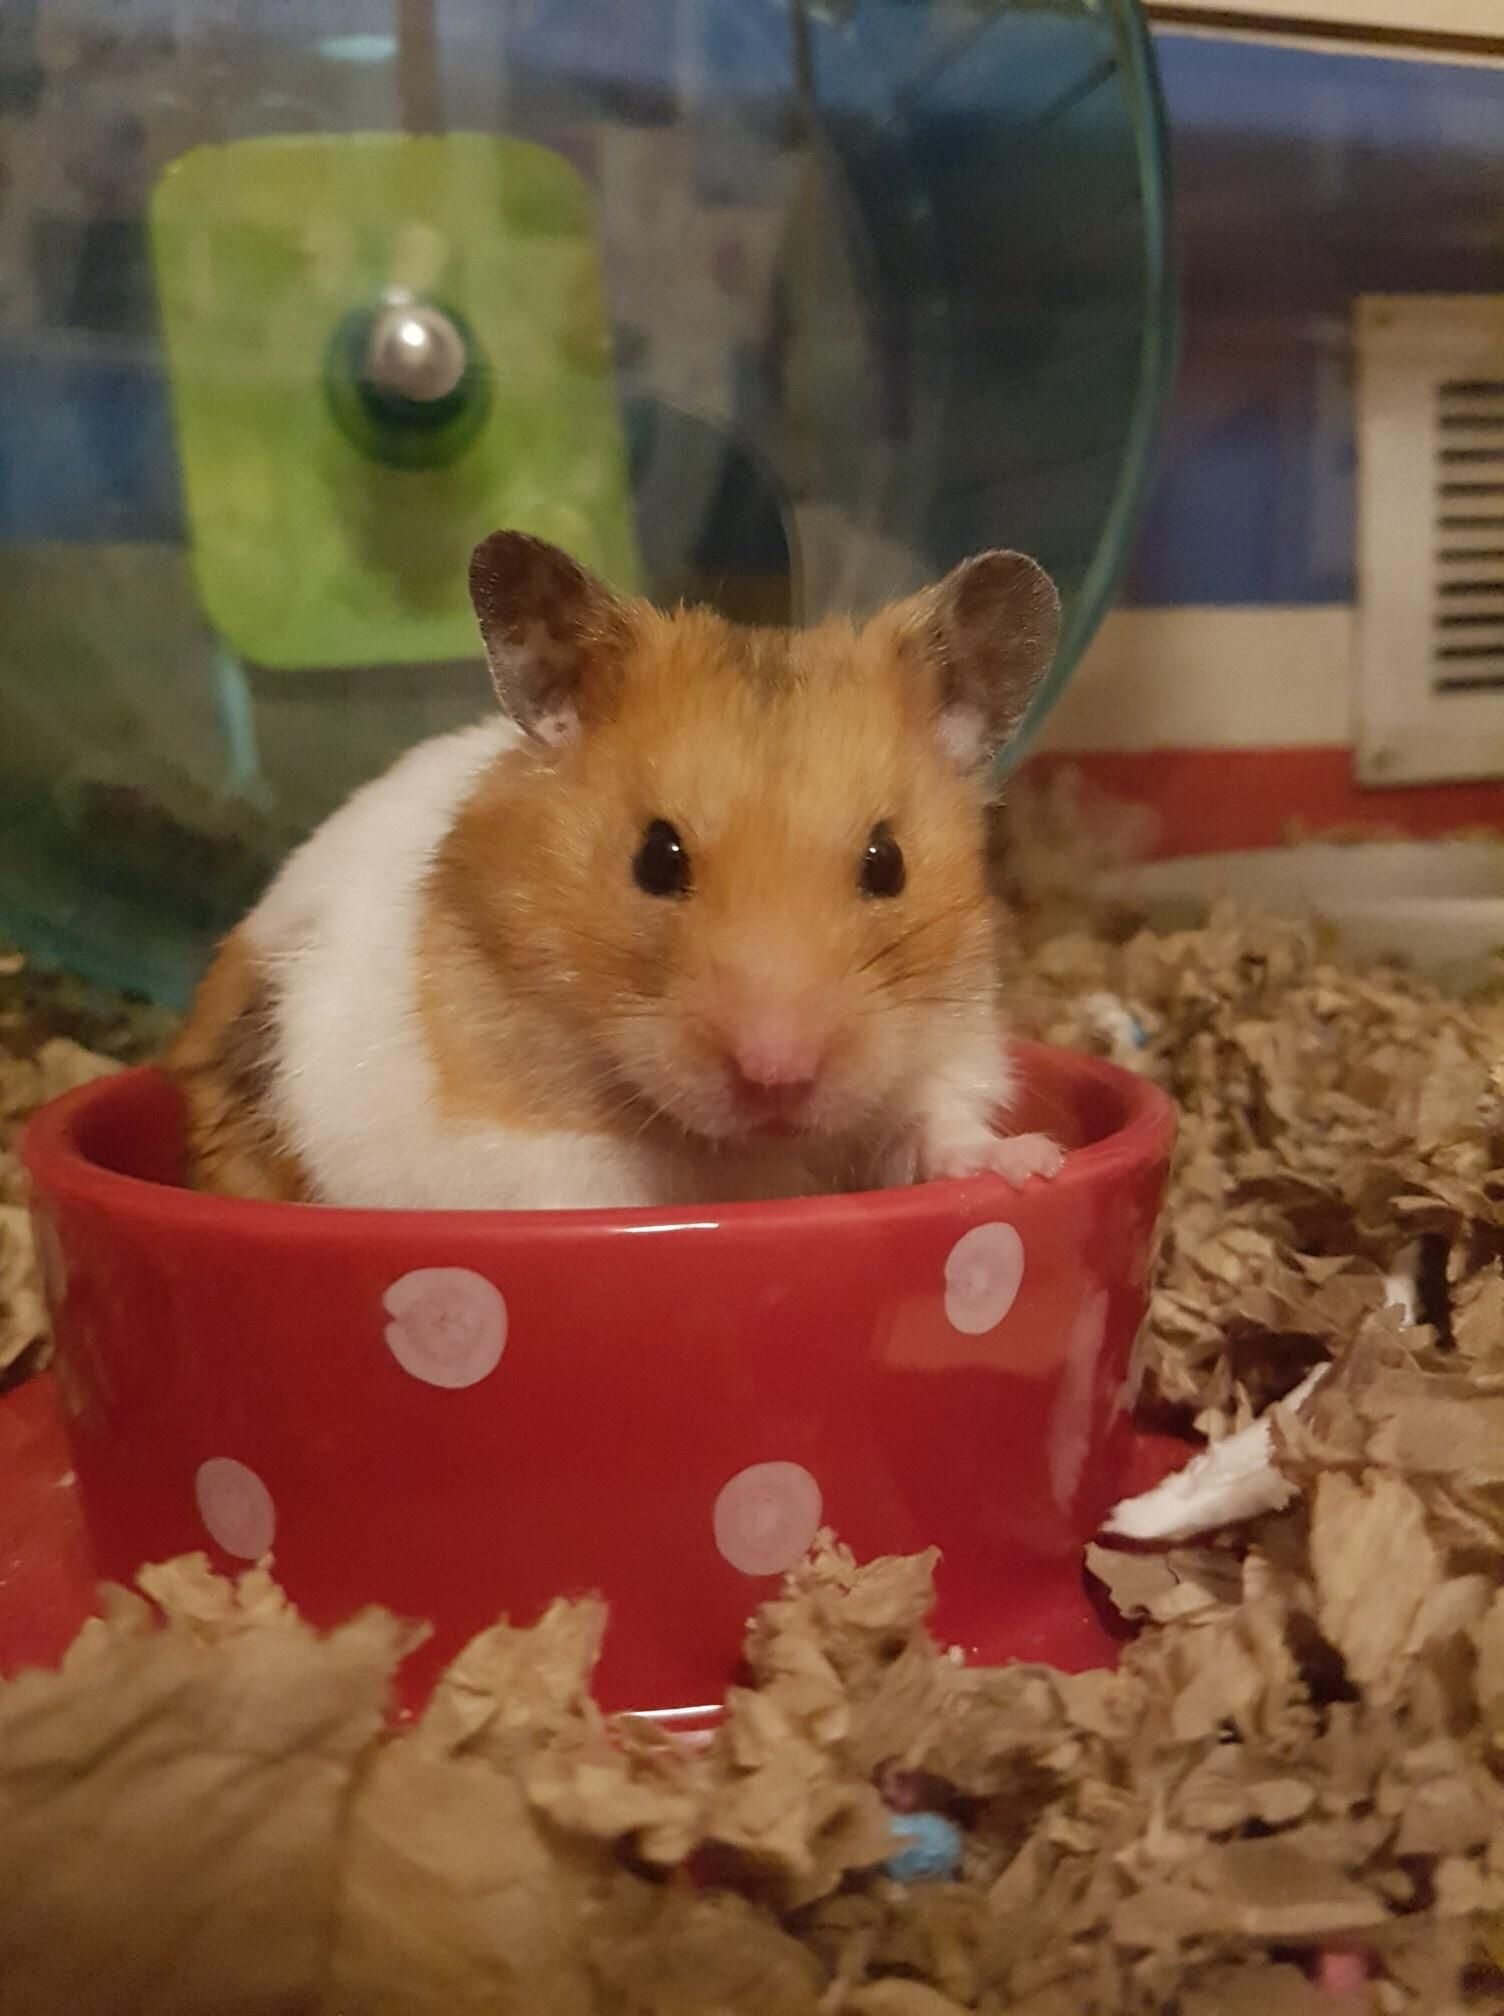 Best Thing About A New Glass House Is Hadess Posing Https Ift Tt 2pwmhn2 Cute Hamsters Super Cute Animals Cute Animals